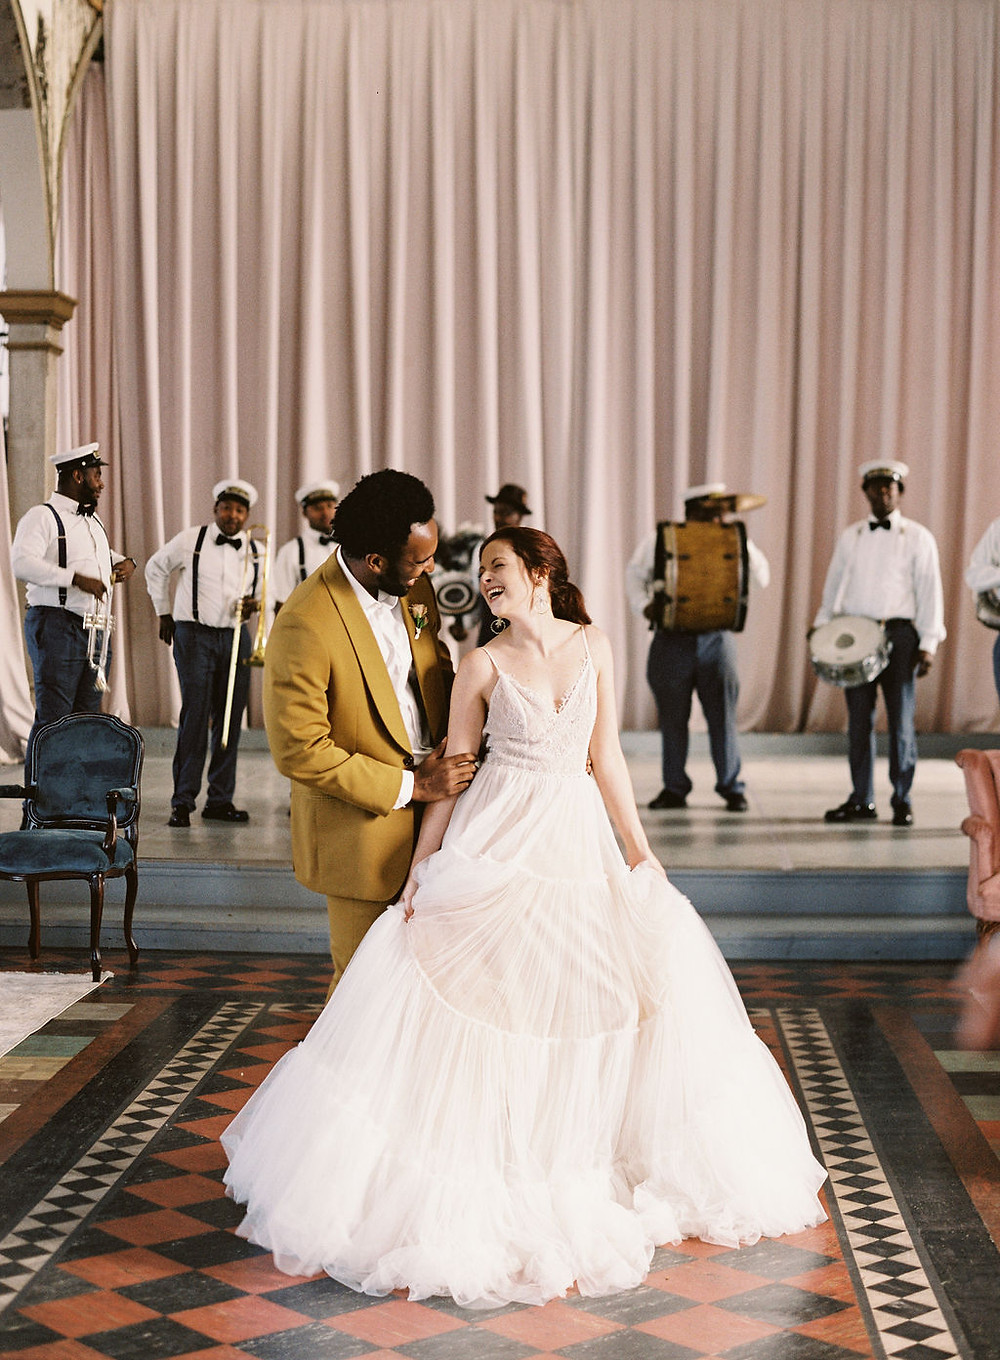 Bride and Groom with Kinfolk Brass Band for Bridgerton Inspired Wedding at the Marigny Opera House in New Orleans with Lounge Spaces and Vintage Furniture by Lovegood Rentals